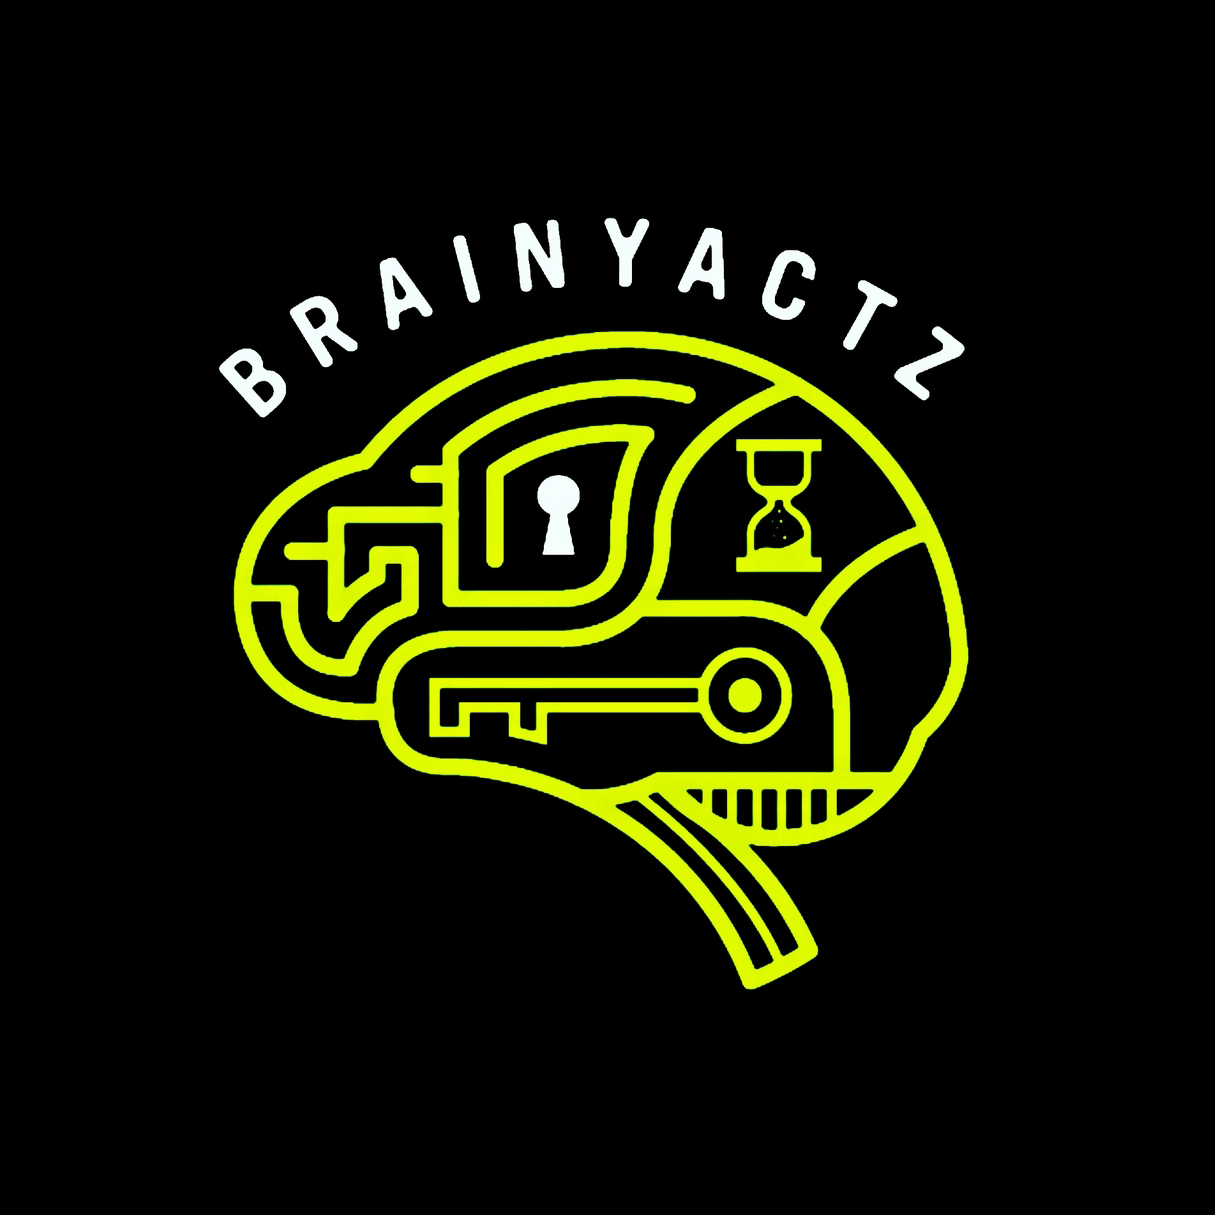 Brainy Actz Escape Rooms